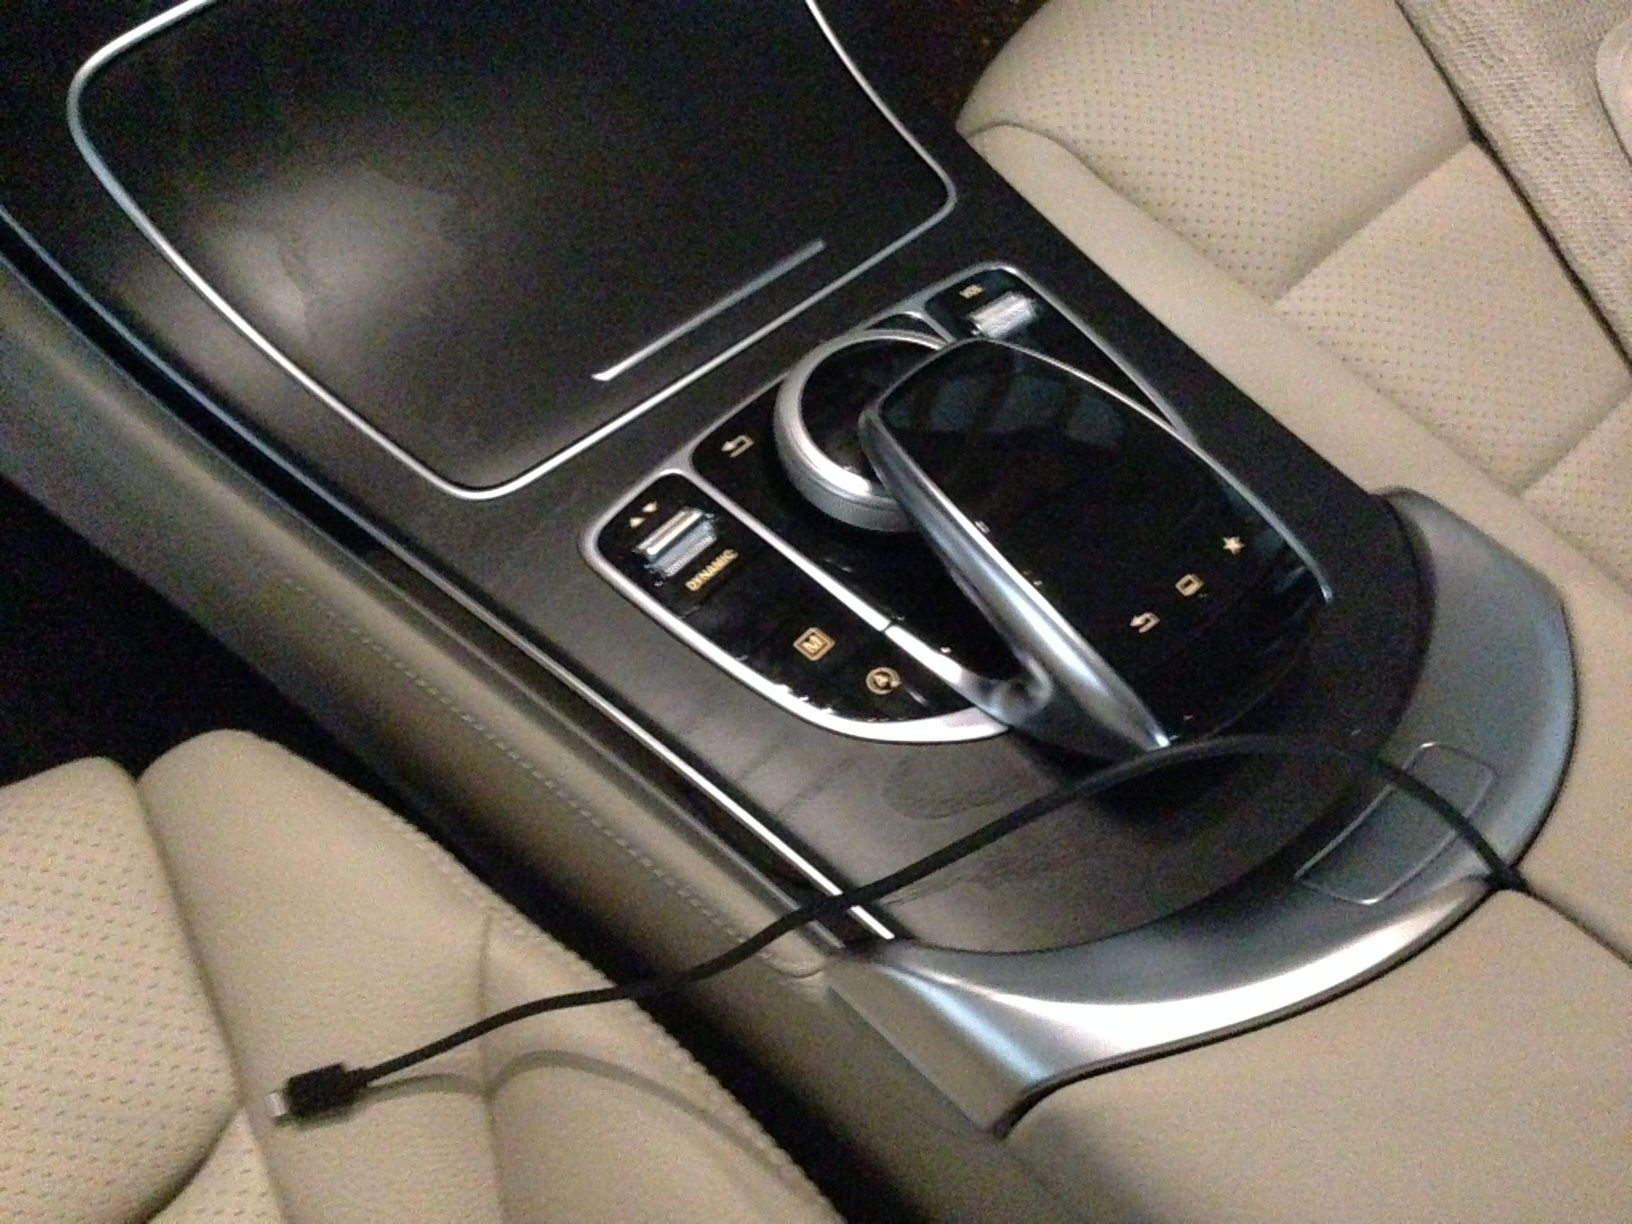 Awesome Galleries Of Mercedes Benz C Class Usb Port Fiat